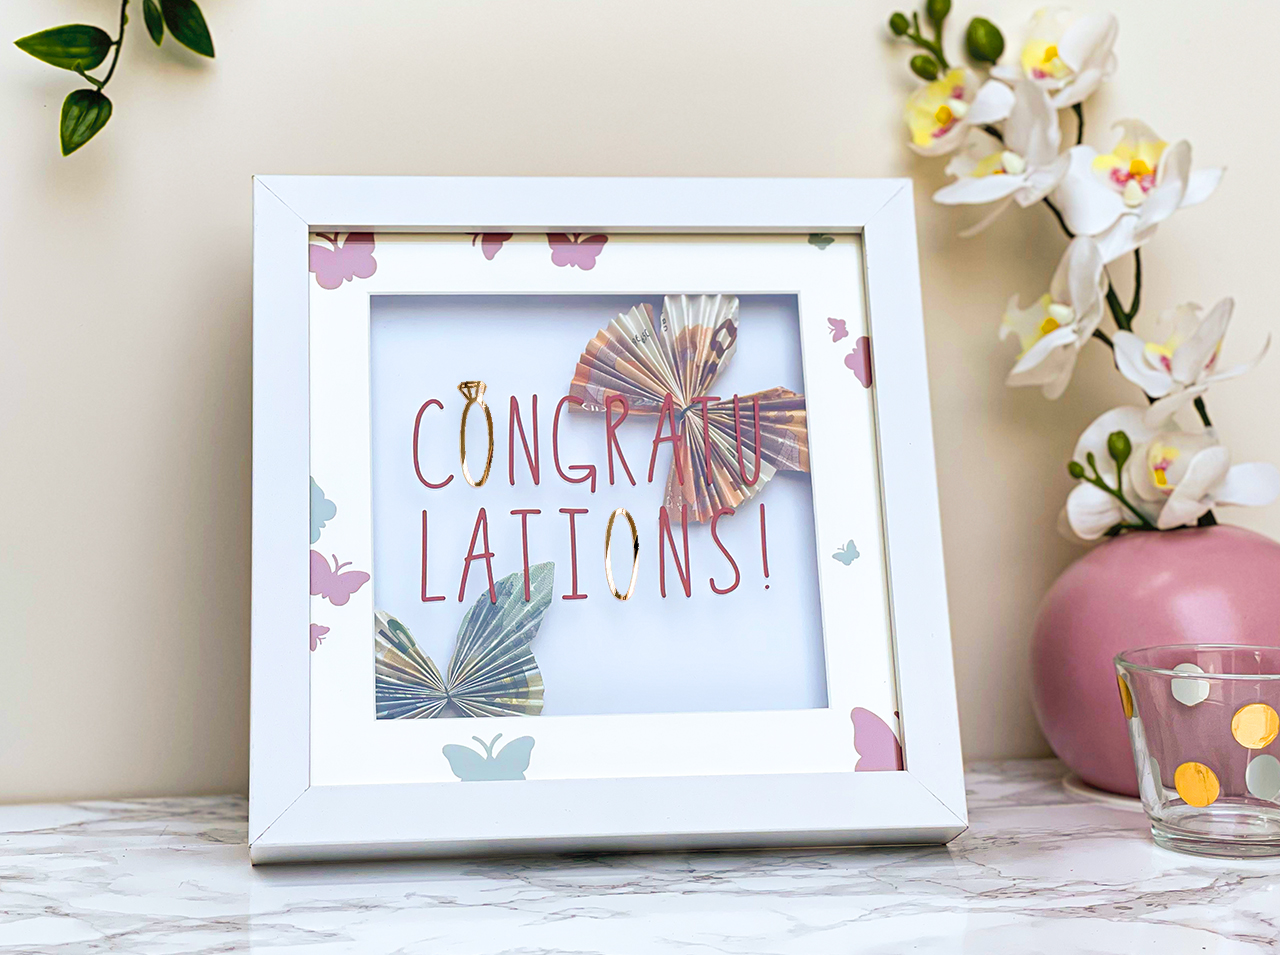 DIY gift: A unique gift – it's possible with this picture frame!